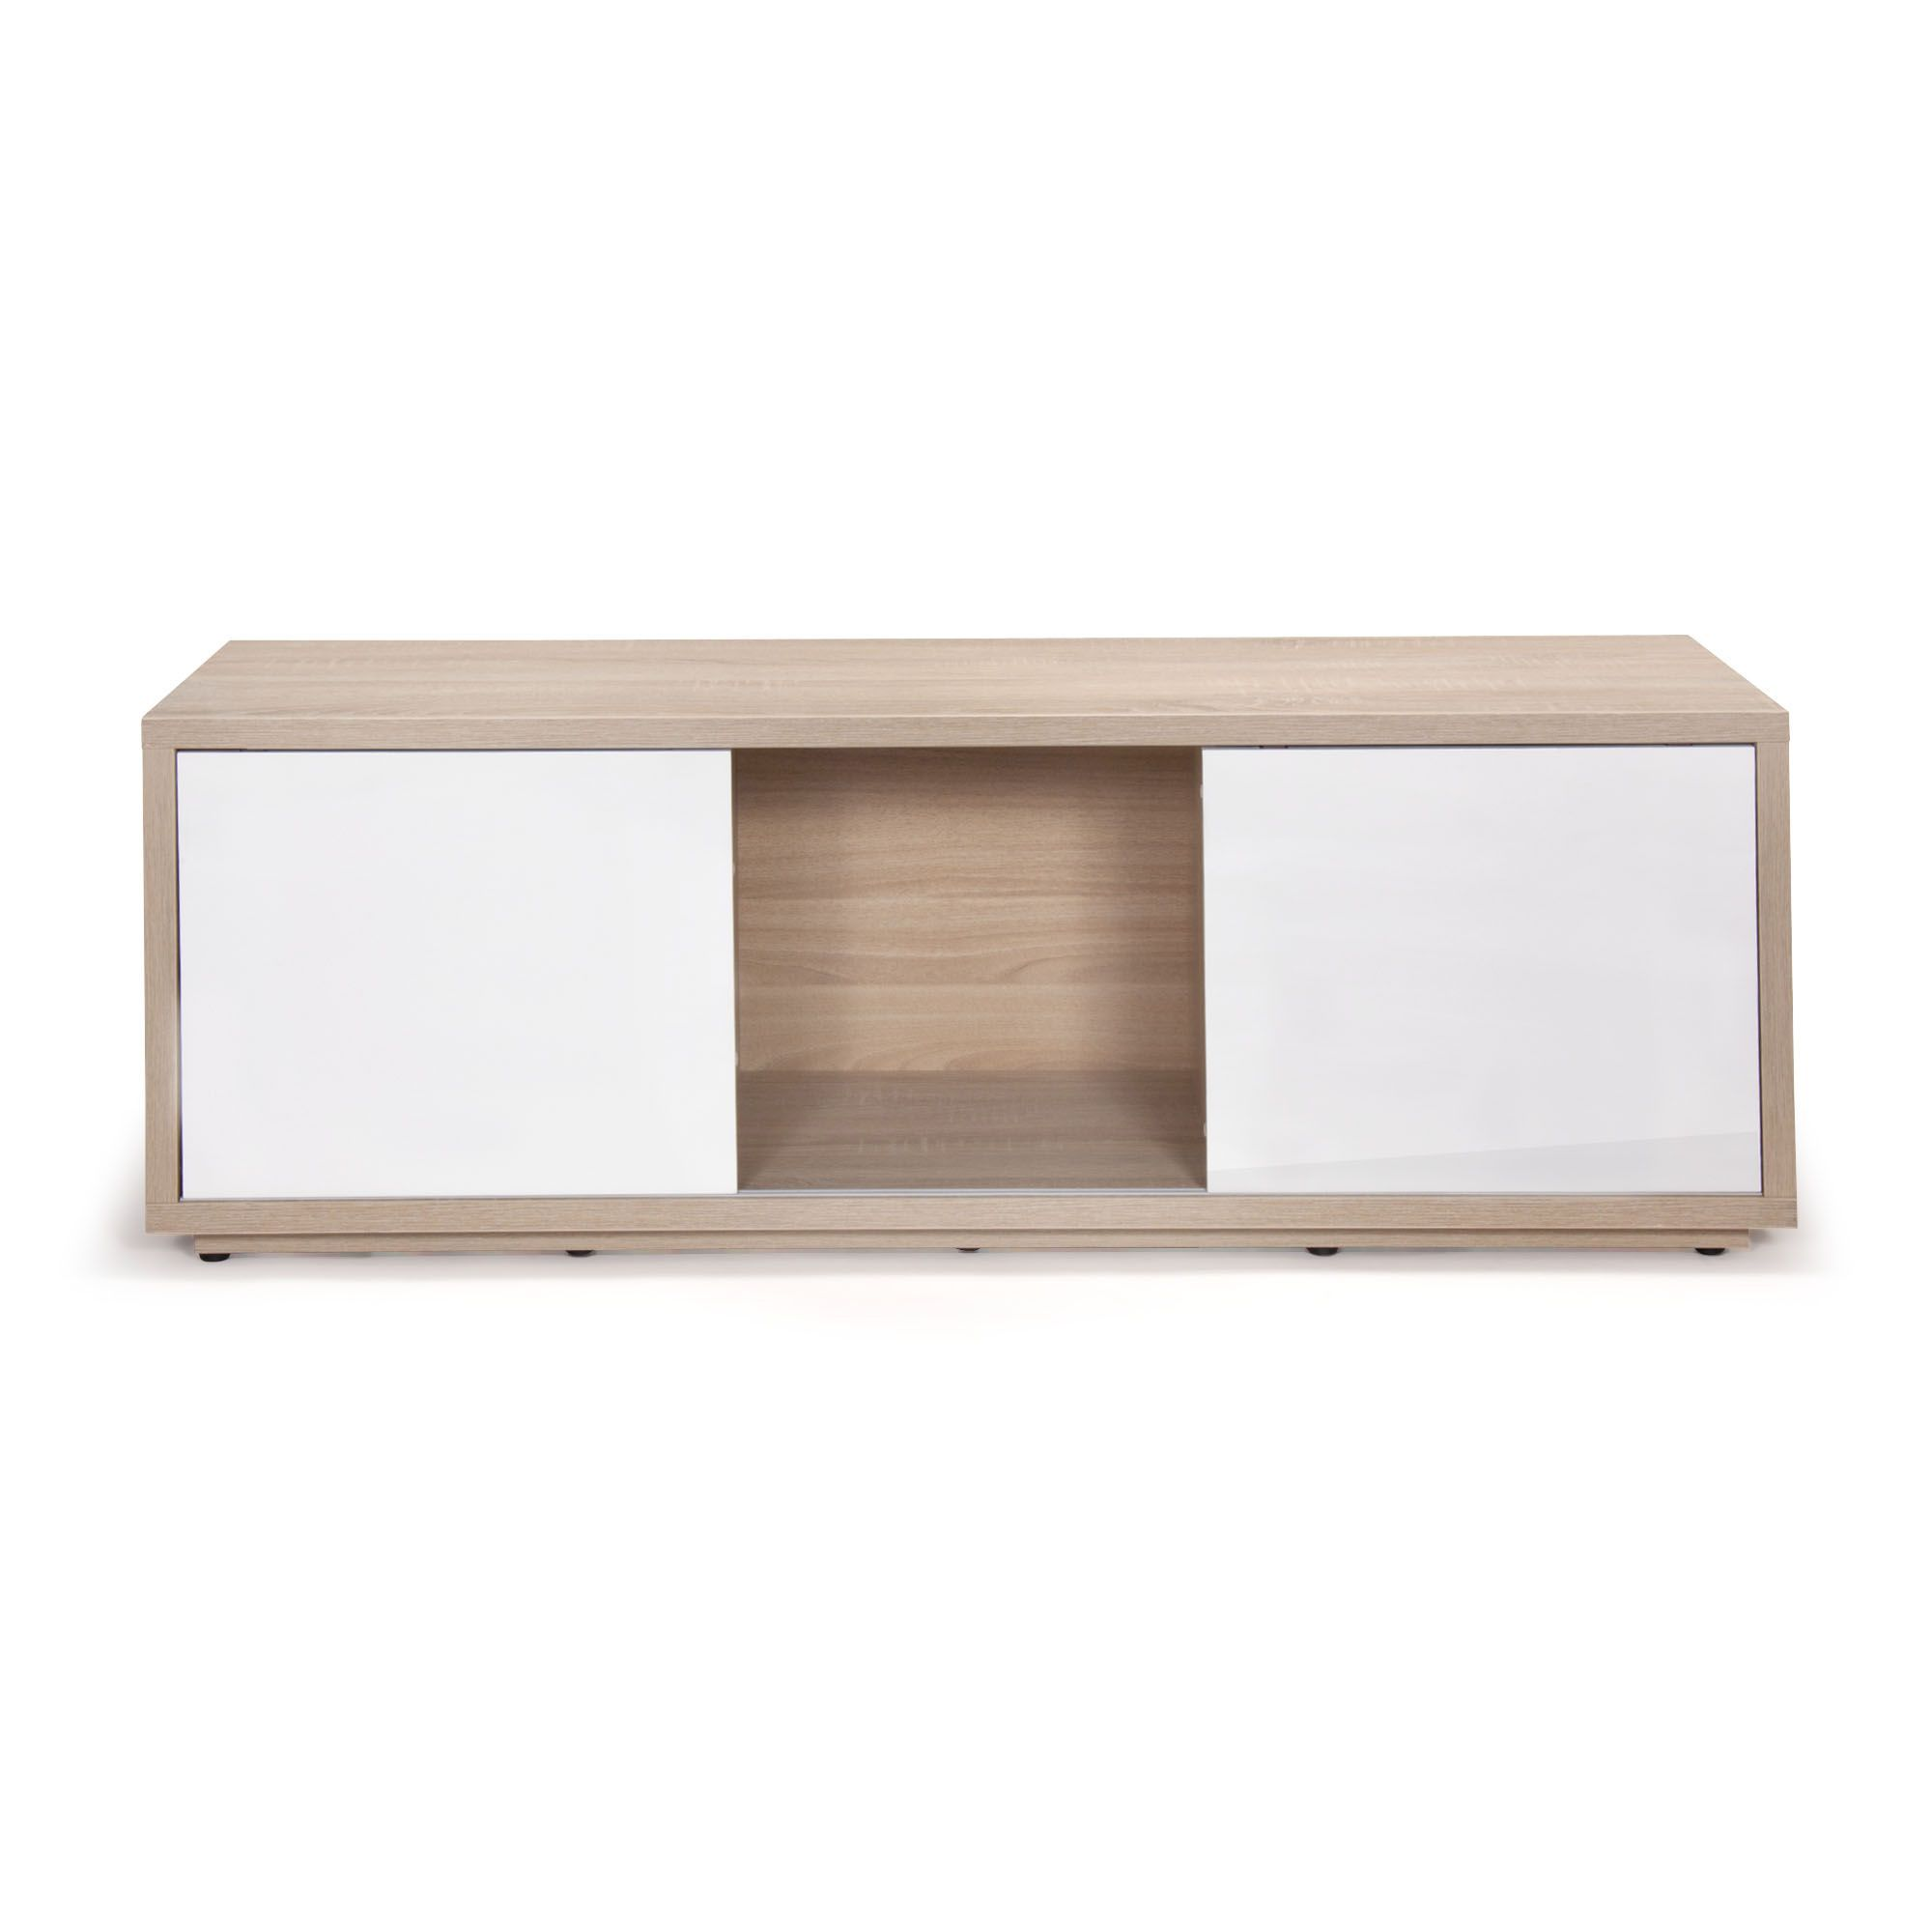 Meuble Tv Design Scandinave Chene Blanc Checker Meuble Meuble